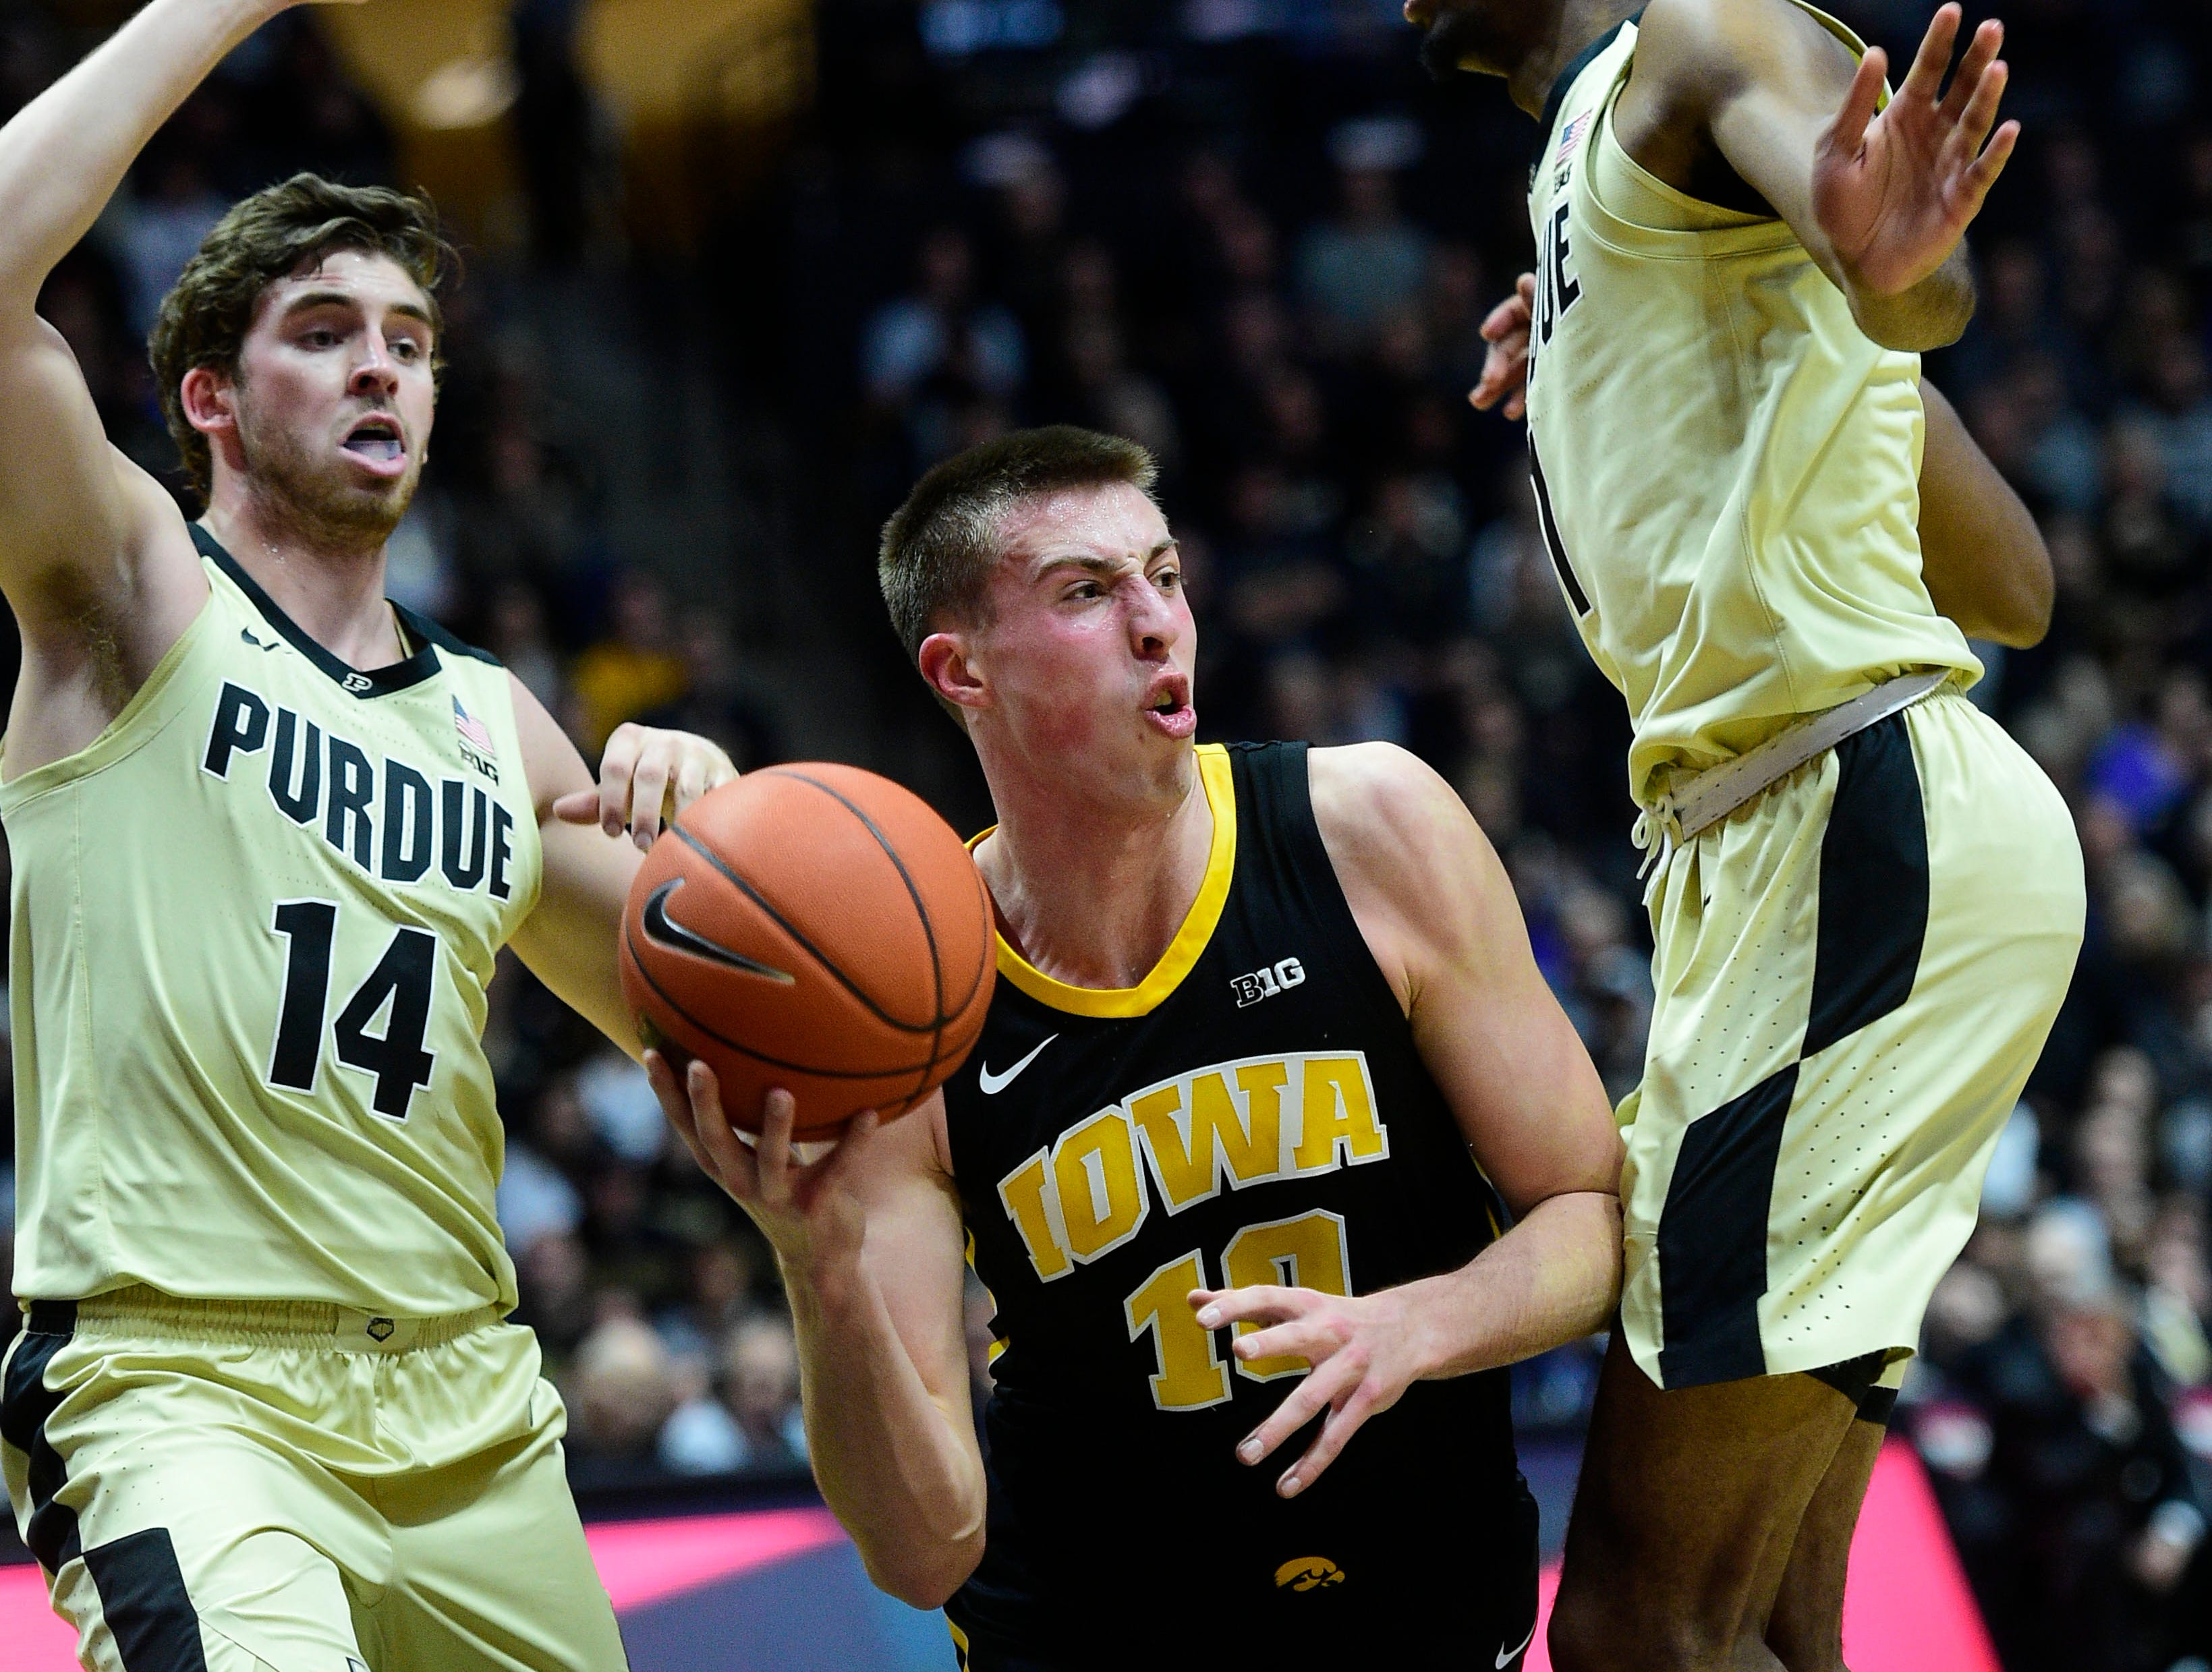 Jan 3, 2019; West Lafayette, IN, USA;  Iowa Hawkeyes guard Joe Weiskamp  (10) looks to pass the ball in Purdue Boilermakers guard Ryan Cline (14) and forward Aaron Wheeler (1) in the first half at Mackey Arena. Mandatory Credit: Thomas J. Russo-USA TODAY Sports